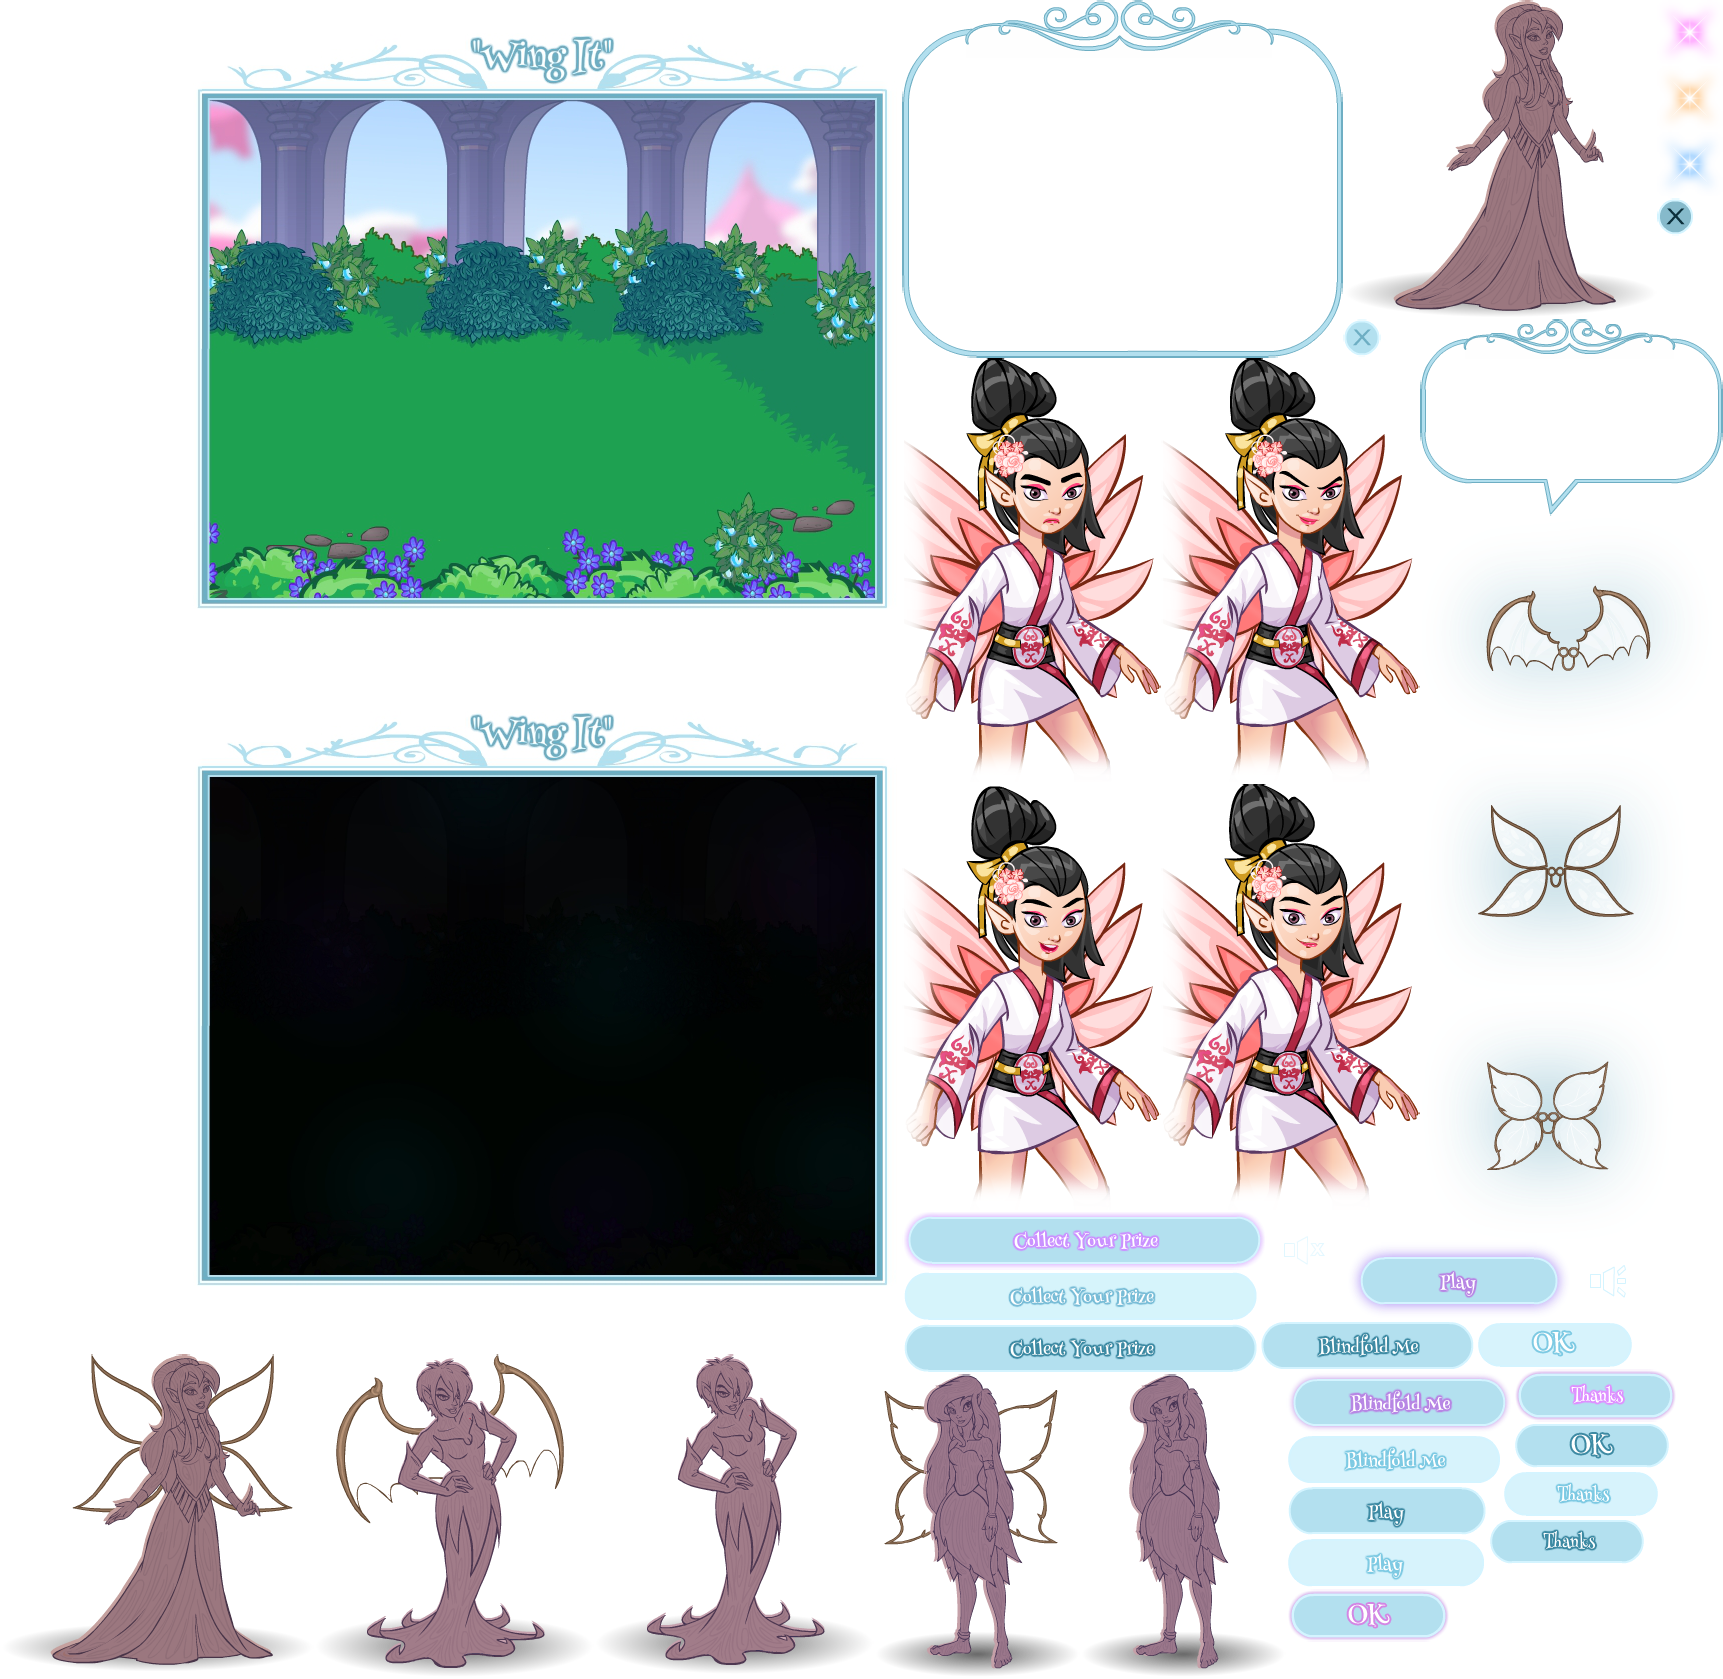 https://images.neopets.com/games/wingit/ptw_spritesheet.png